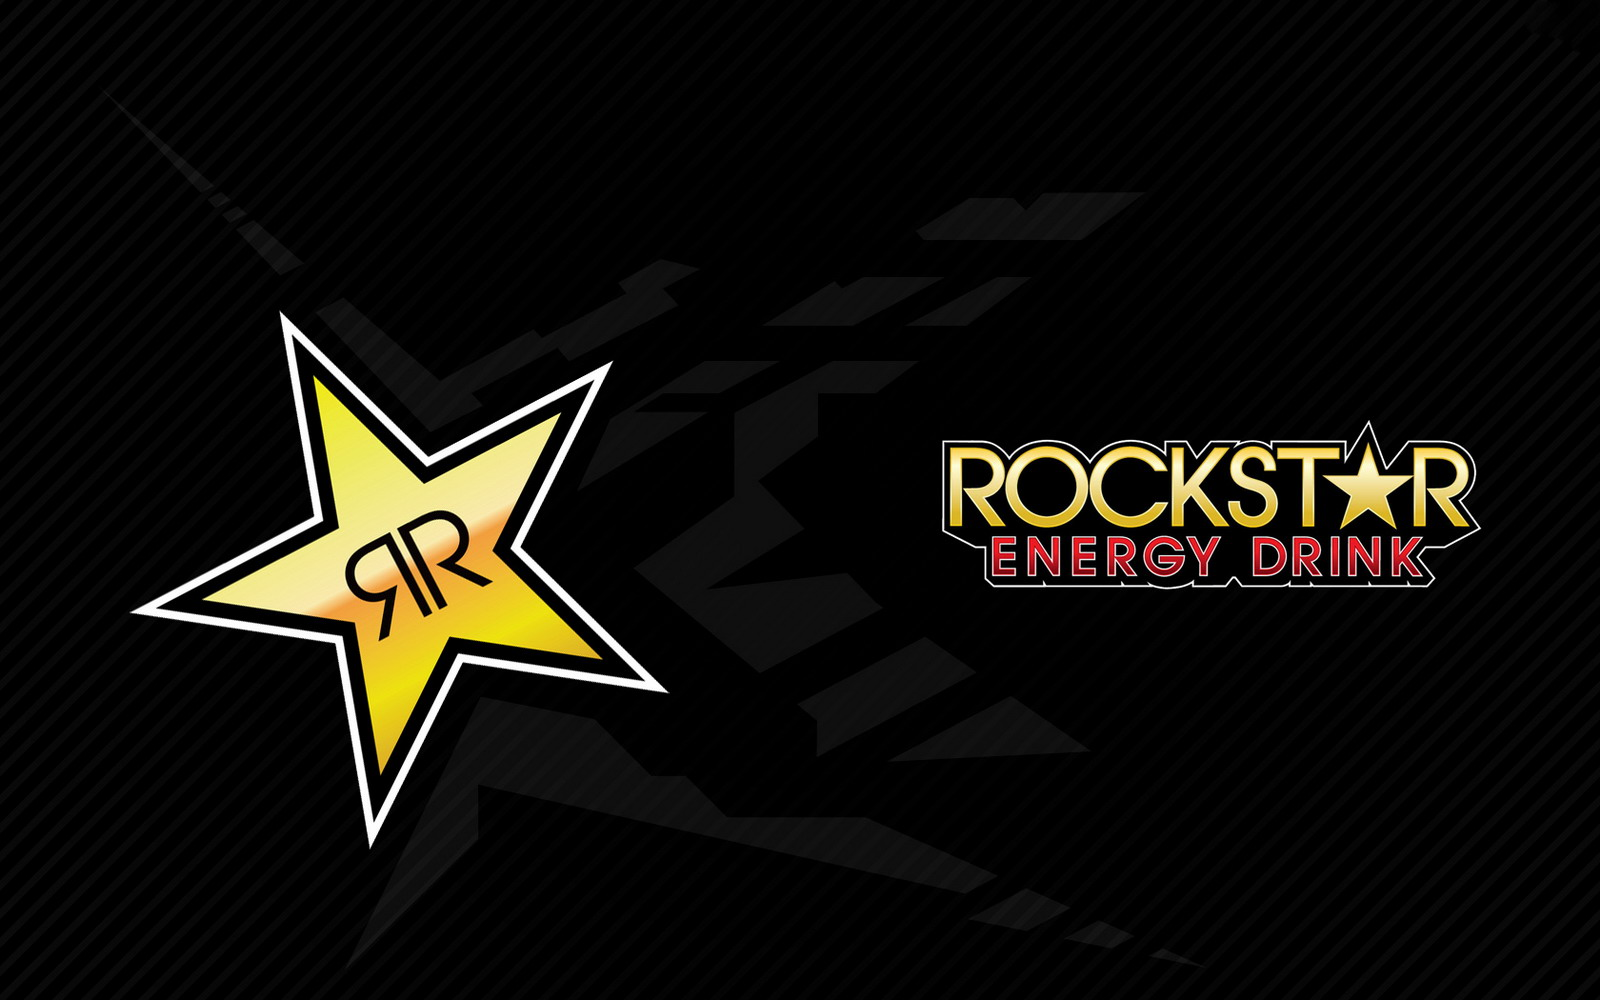 free download rockstar energy drink image hd wallpaper